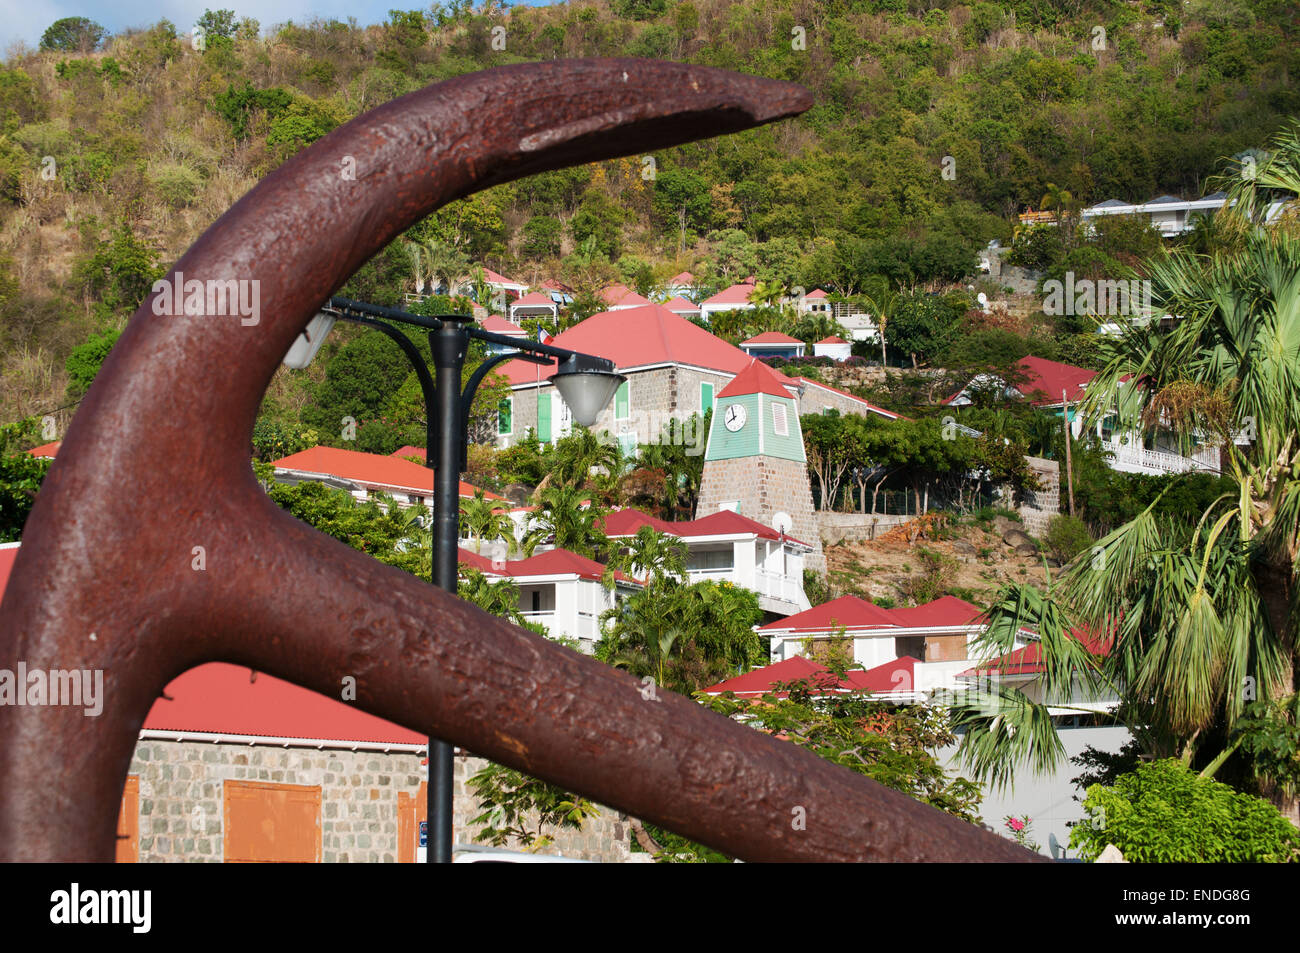 St. Barths, Saint-Barthélemy, French West Indies, Caribbean: an anchor in the center of Gustavia and the Swedish Clock Tower and Belfry Stock Photo